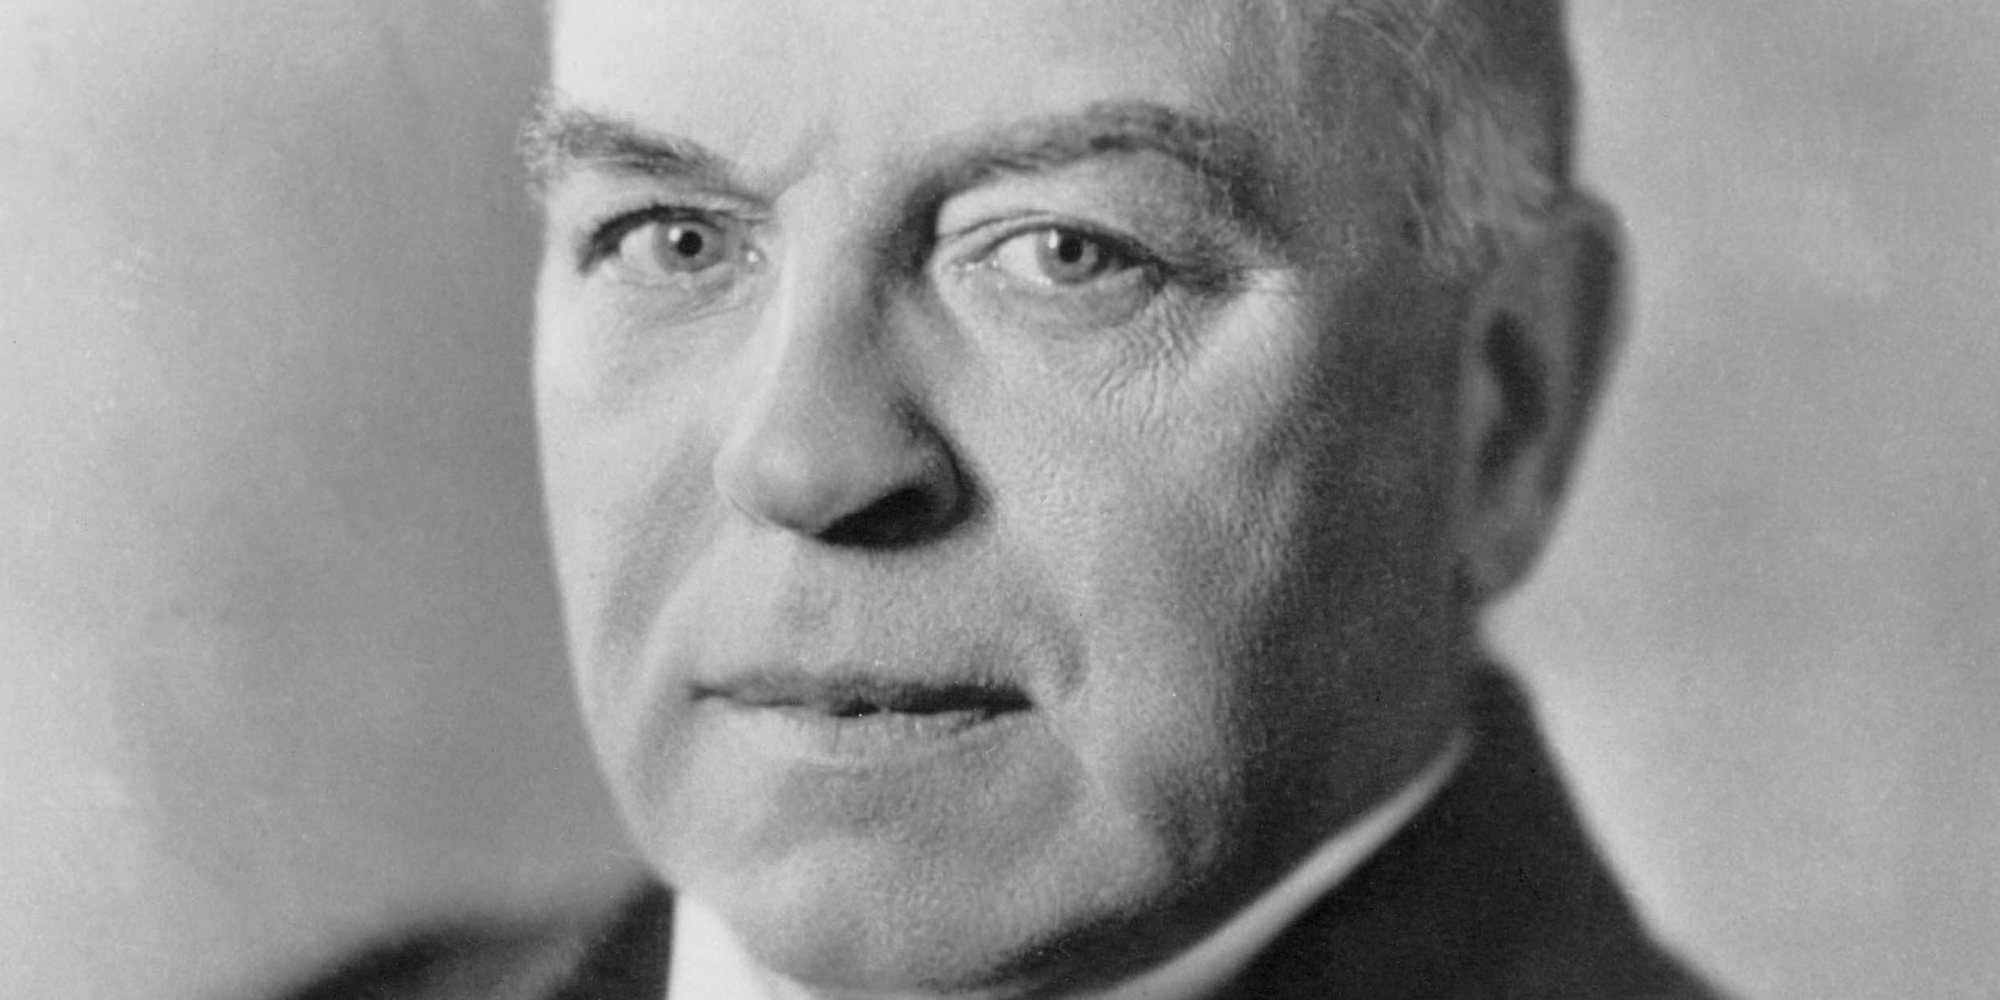 william lyon mackenzie king Early life king was born in berlin, ontario (now kitchener)a grandson of william lyon mackenzie, leader of the upper canada rebellion in 1837, king held five university degrees.